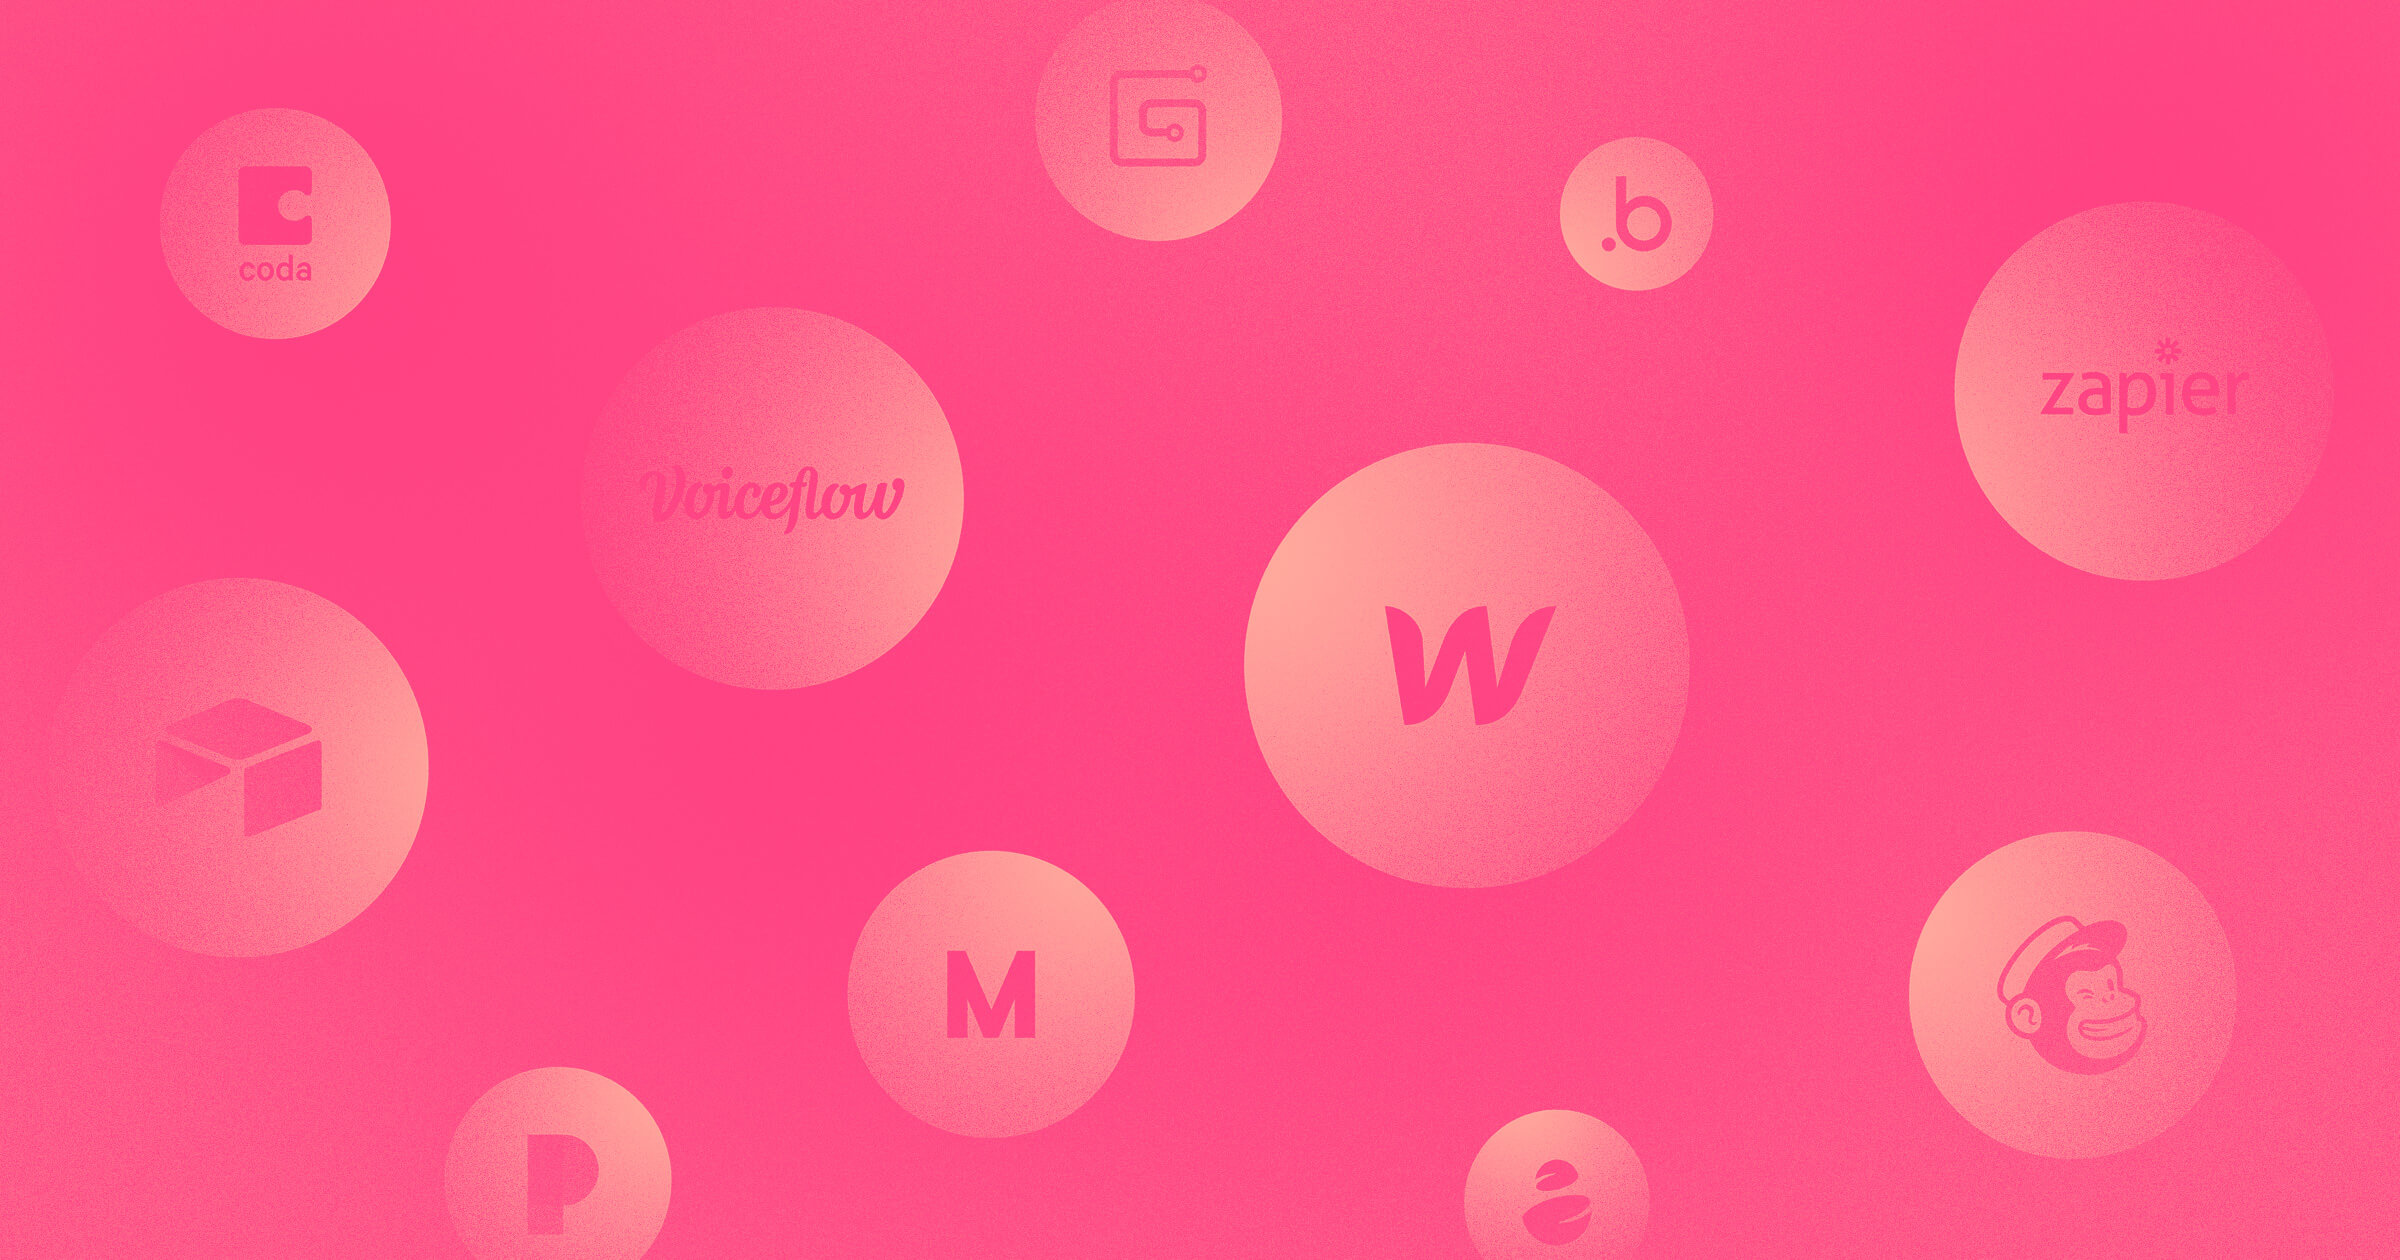 A gradient magenta collage of no-code app logos like Webflow, Mailchimp, Voiceflow, Airtable, and Coda within floating circles.